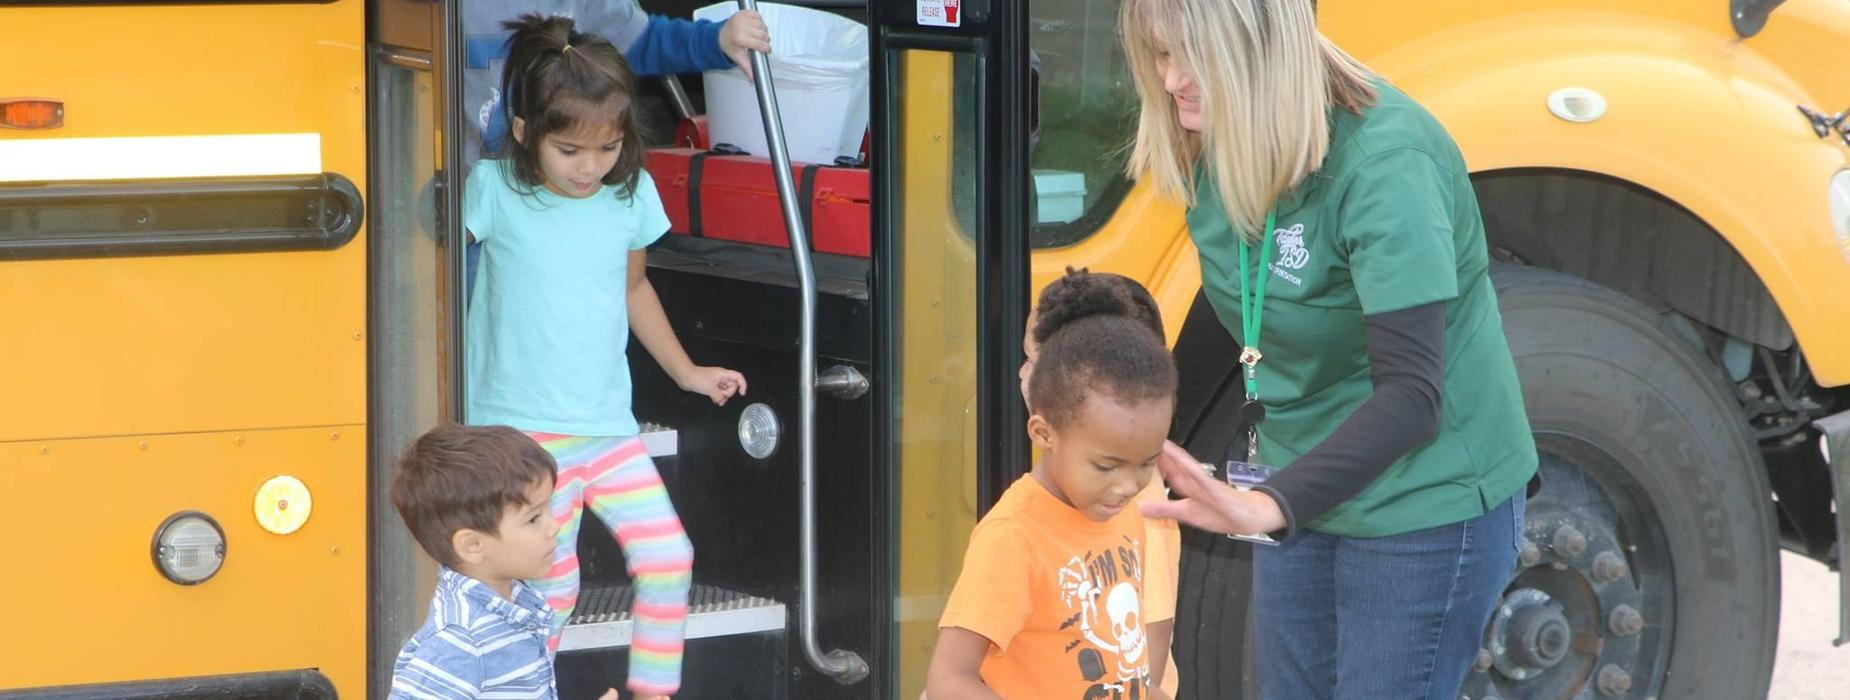 Practicing bus safety at TH Johnson Elementary